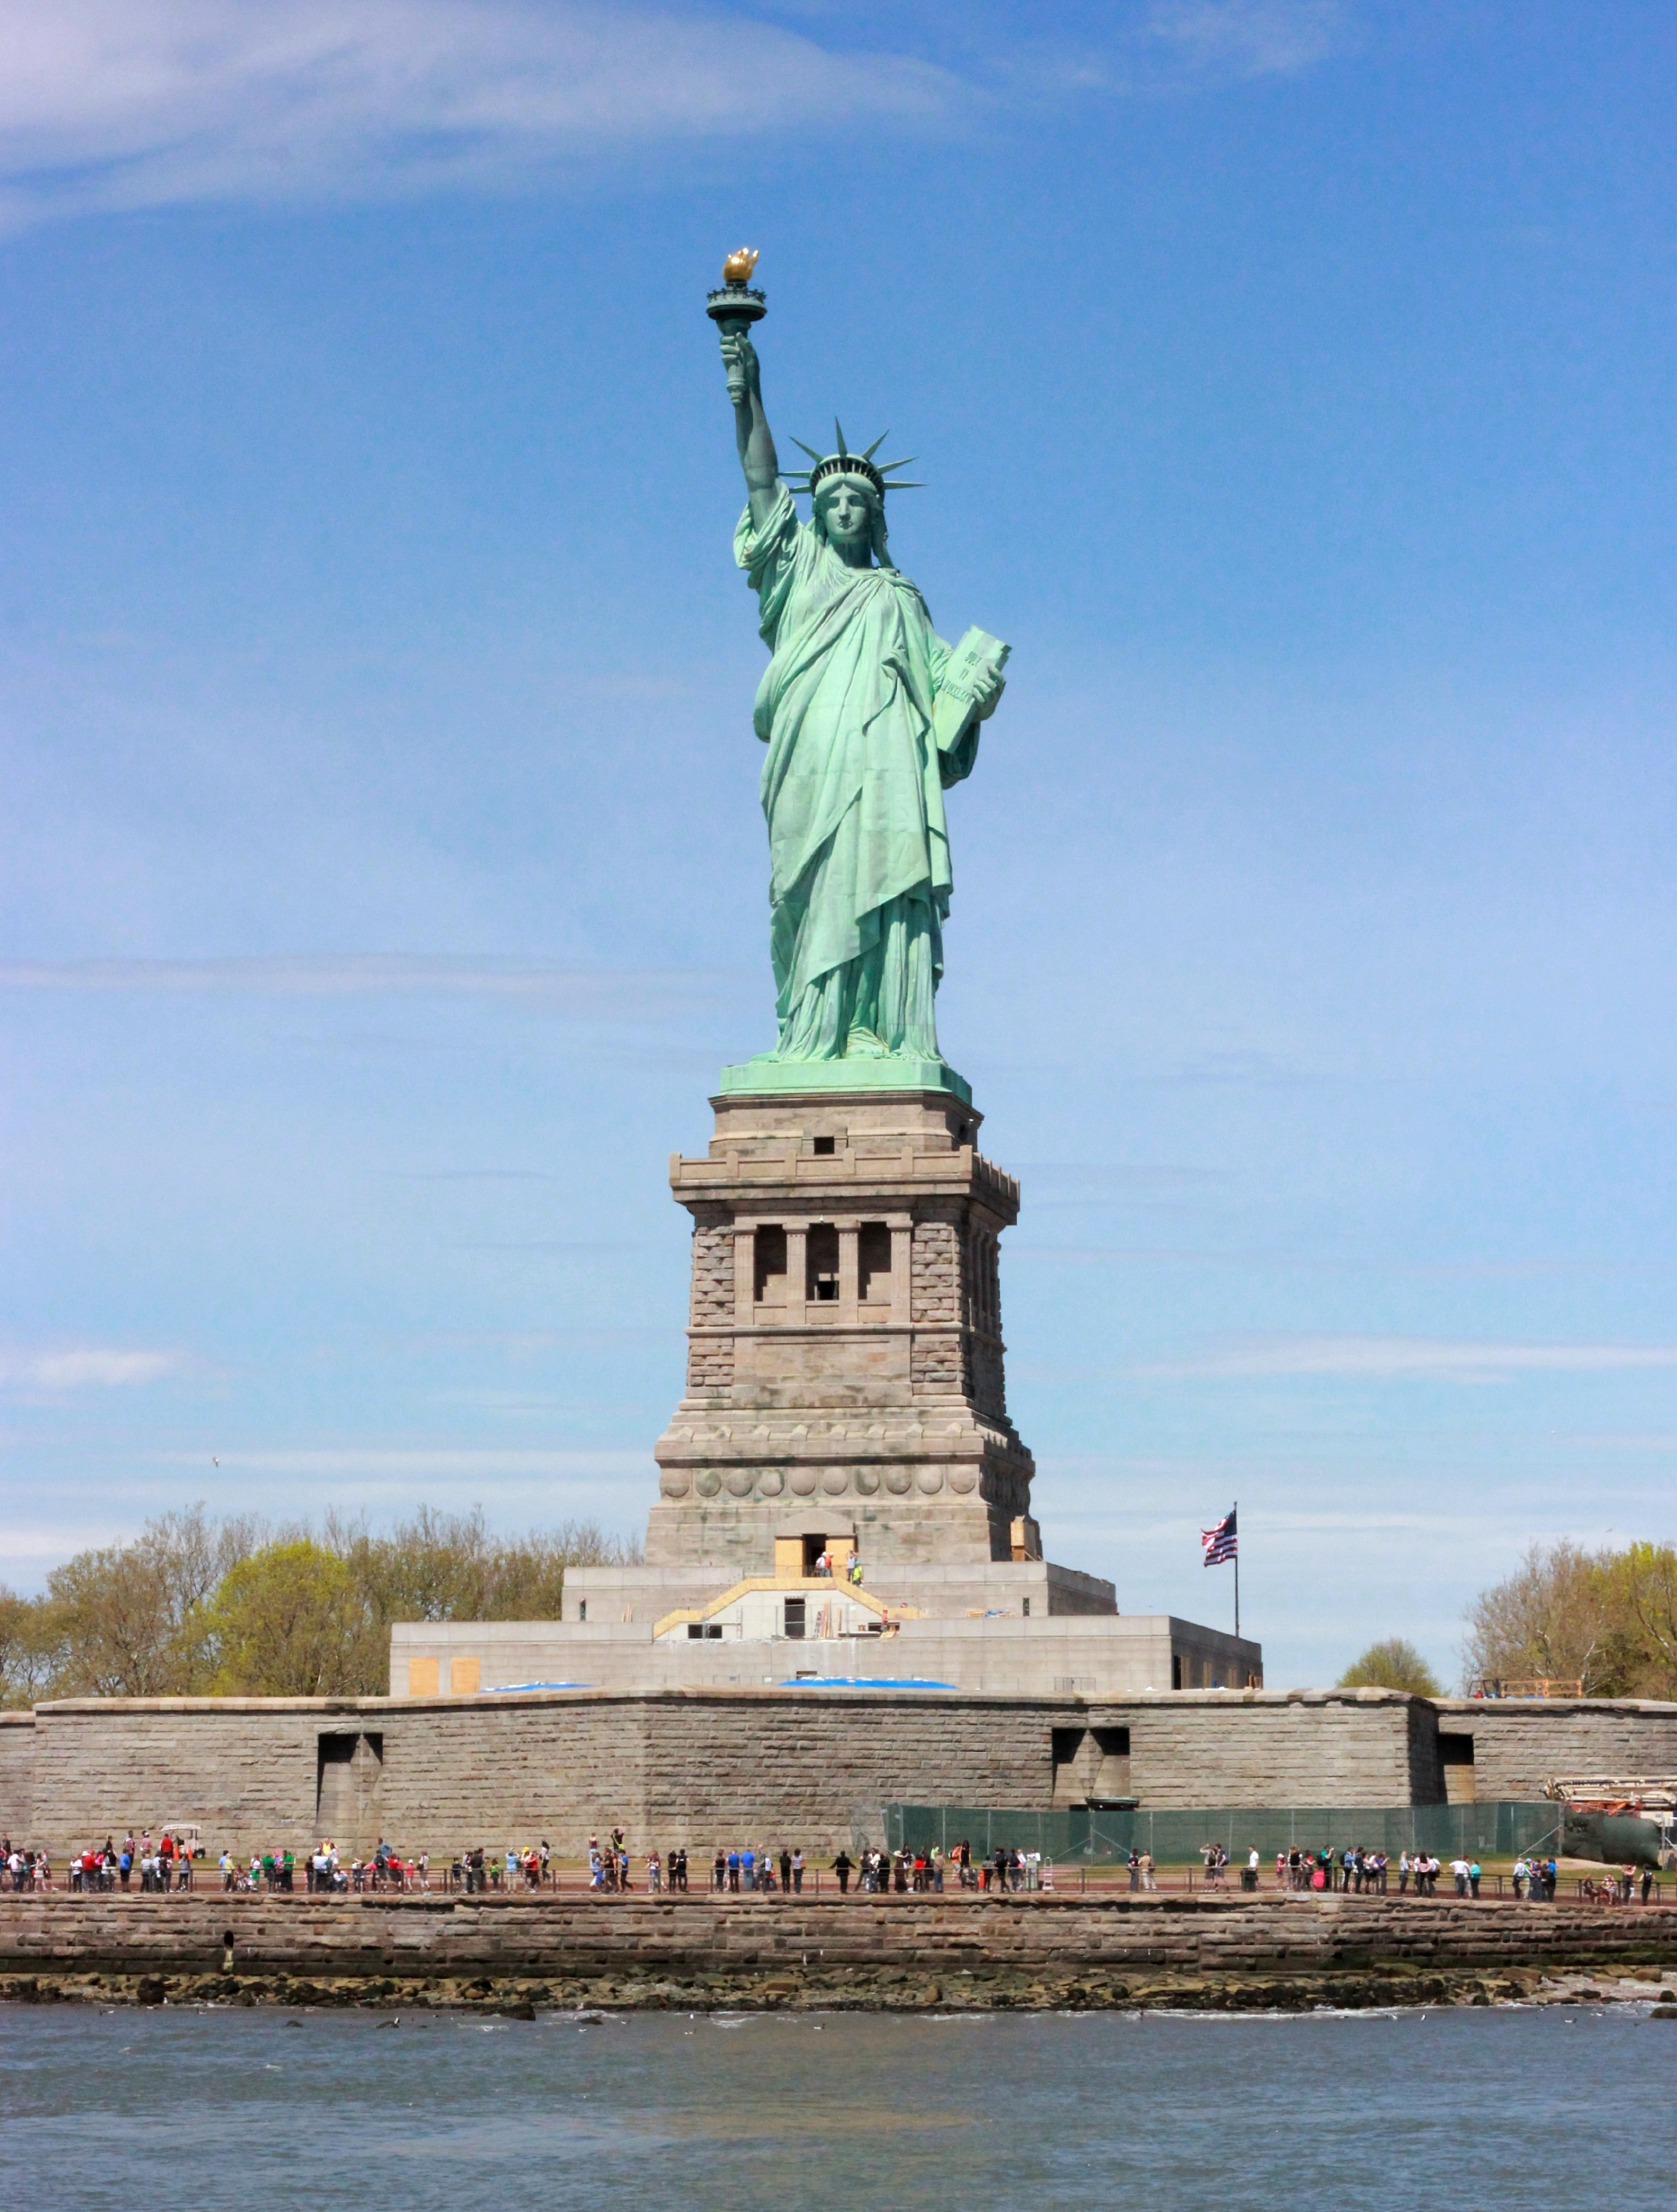 For Sale - Statue of Liberty - Skyline Owners Forum